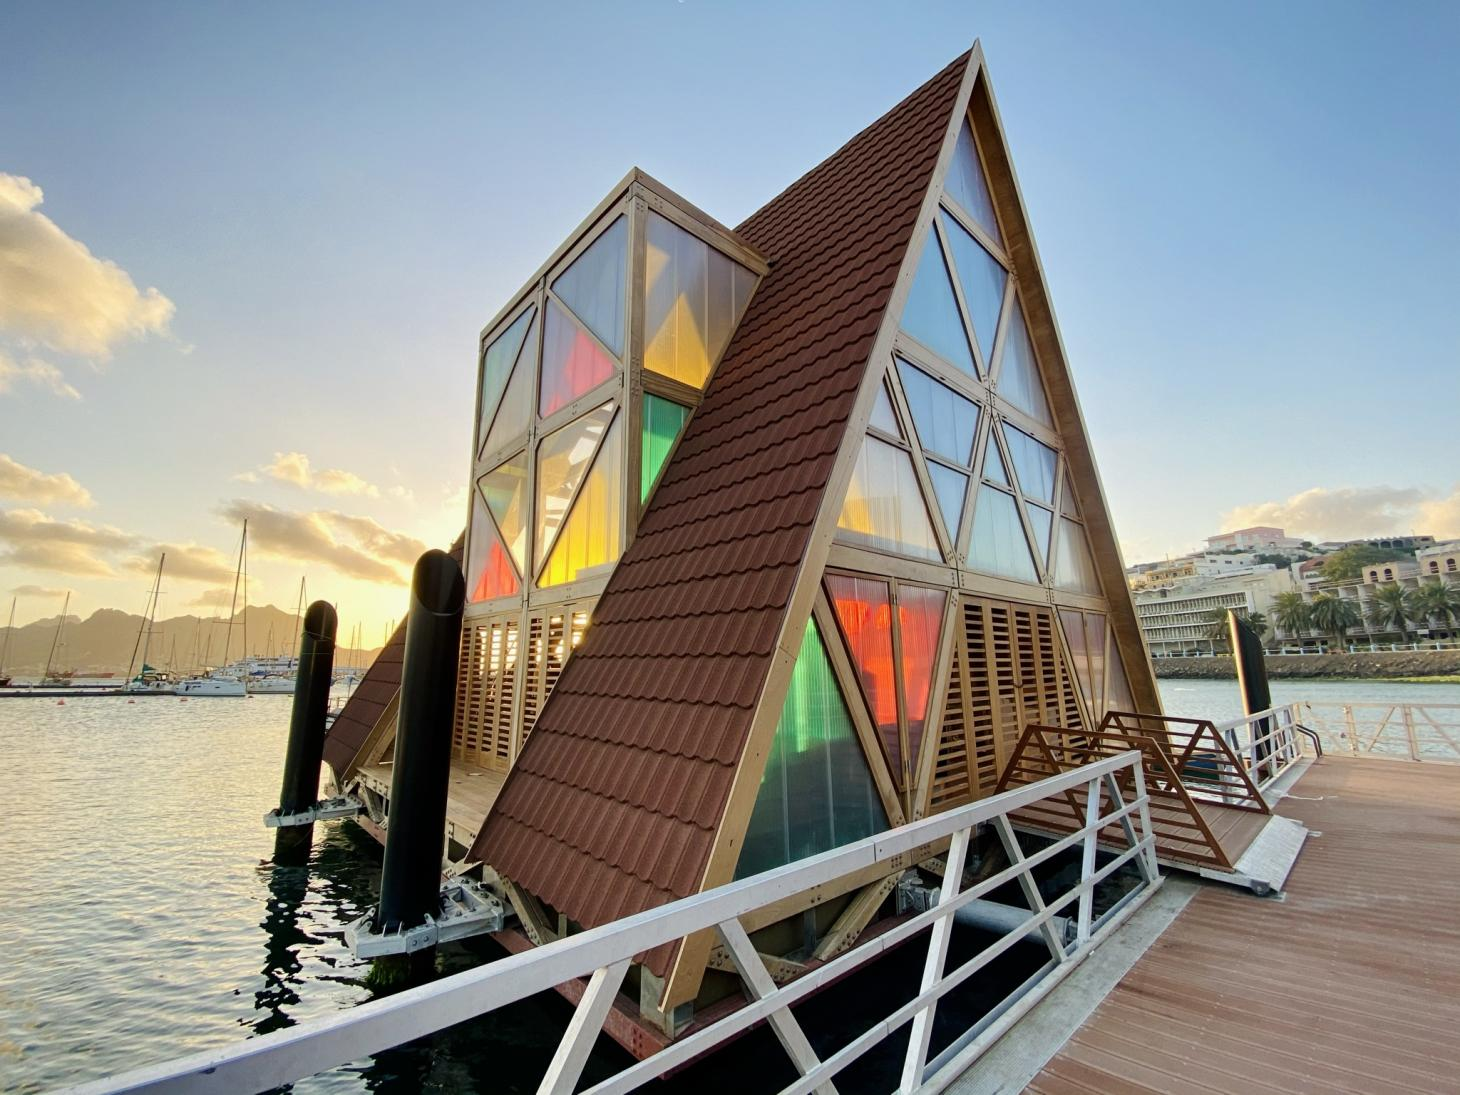 The triangular facade features brightly coloured panels of stained glass